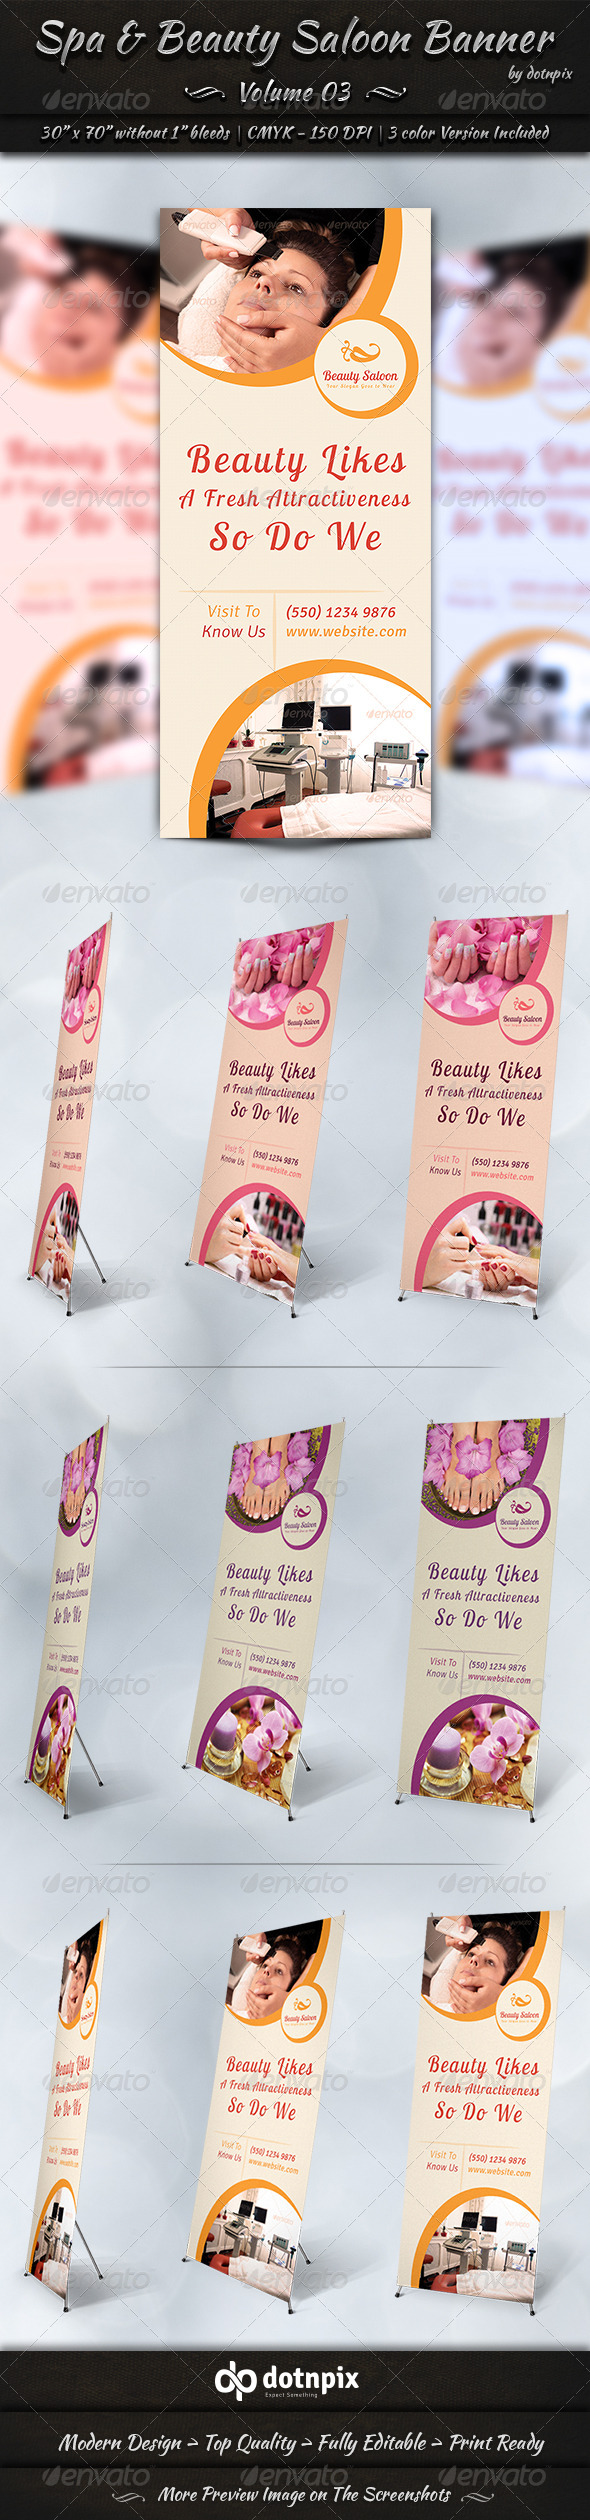 GraphicRiver Spa & Beauty Saloon Banner Volume 3 7840615